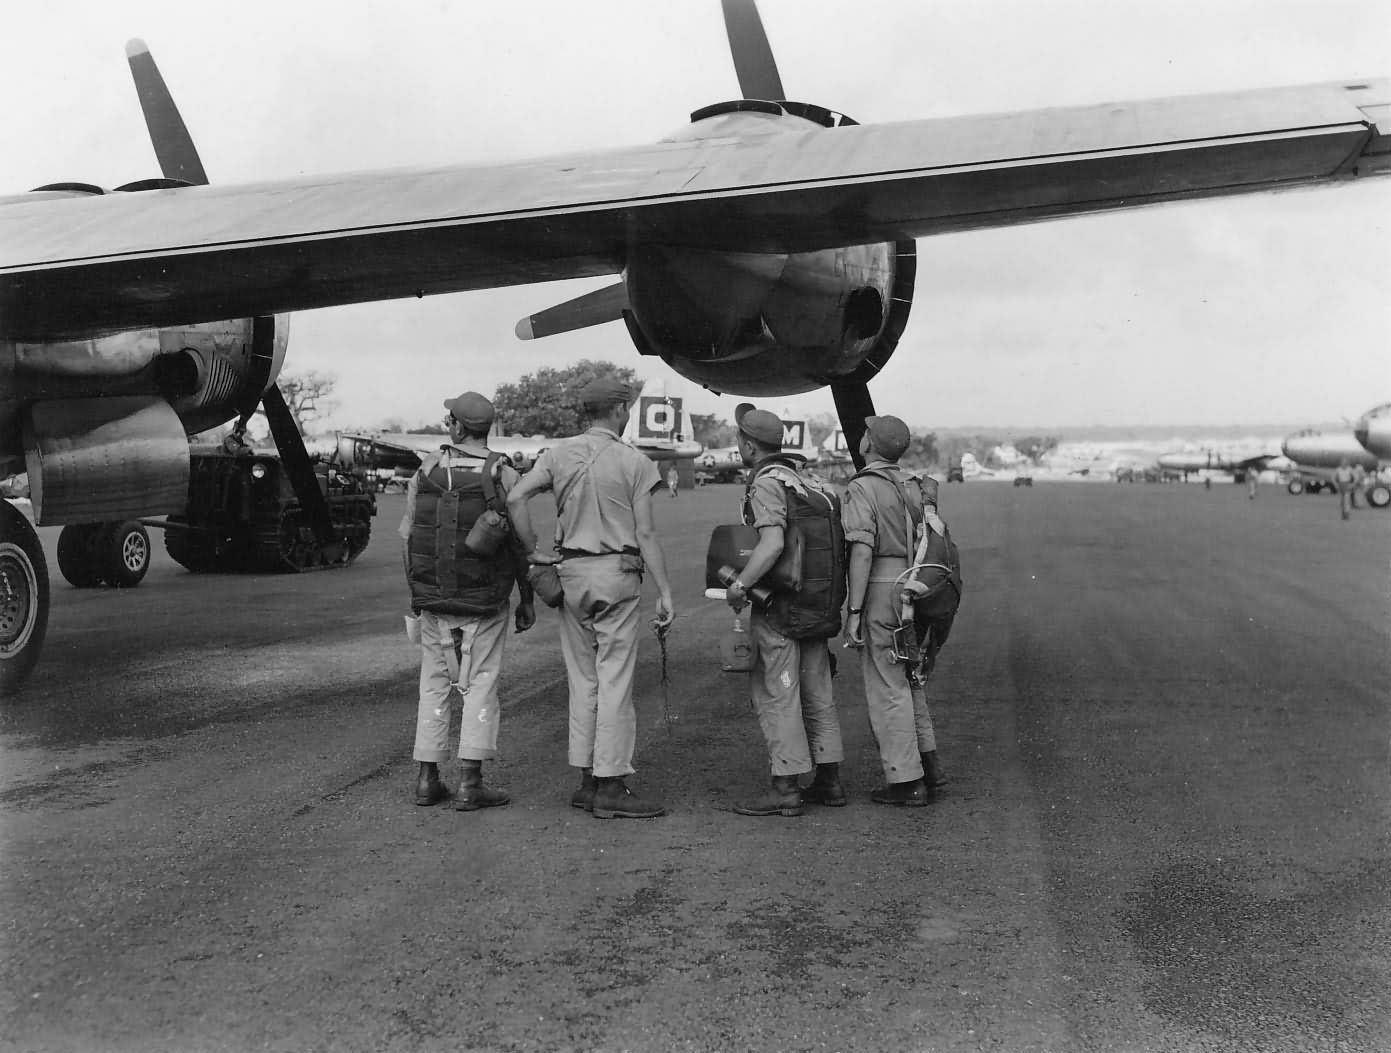 USAAF Crew Look at 29th bomb group Boeing B-29 Superfortress bombers GUAM